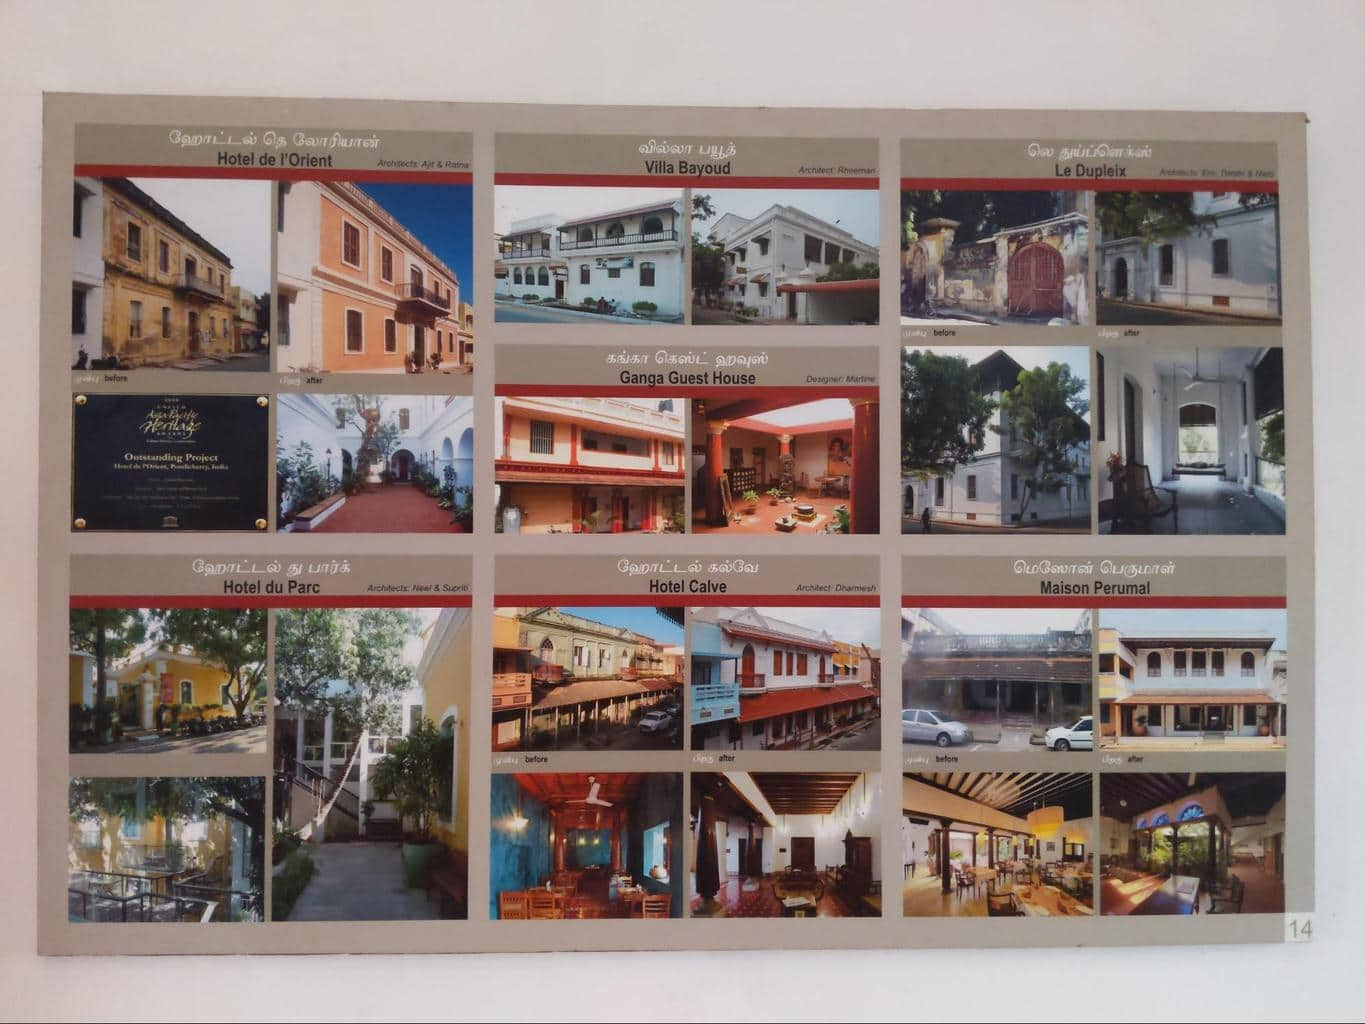 Documenting Pondicherry's heritage at INTACH